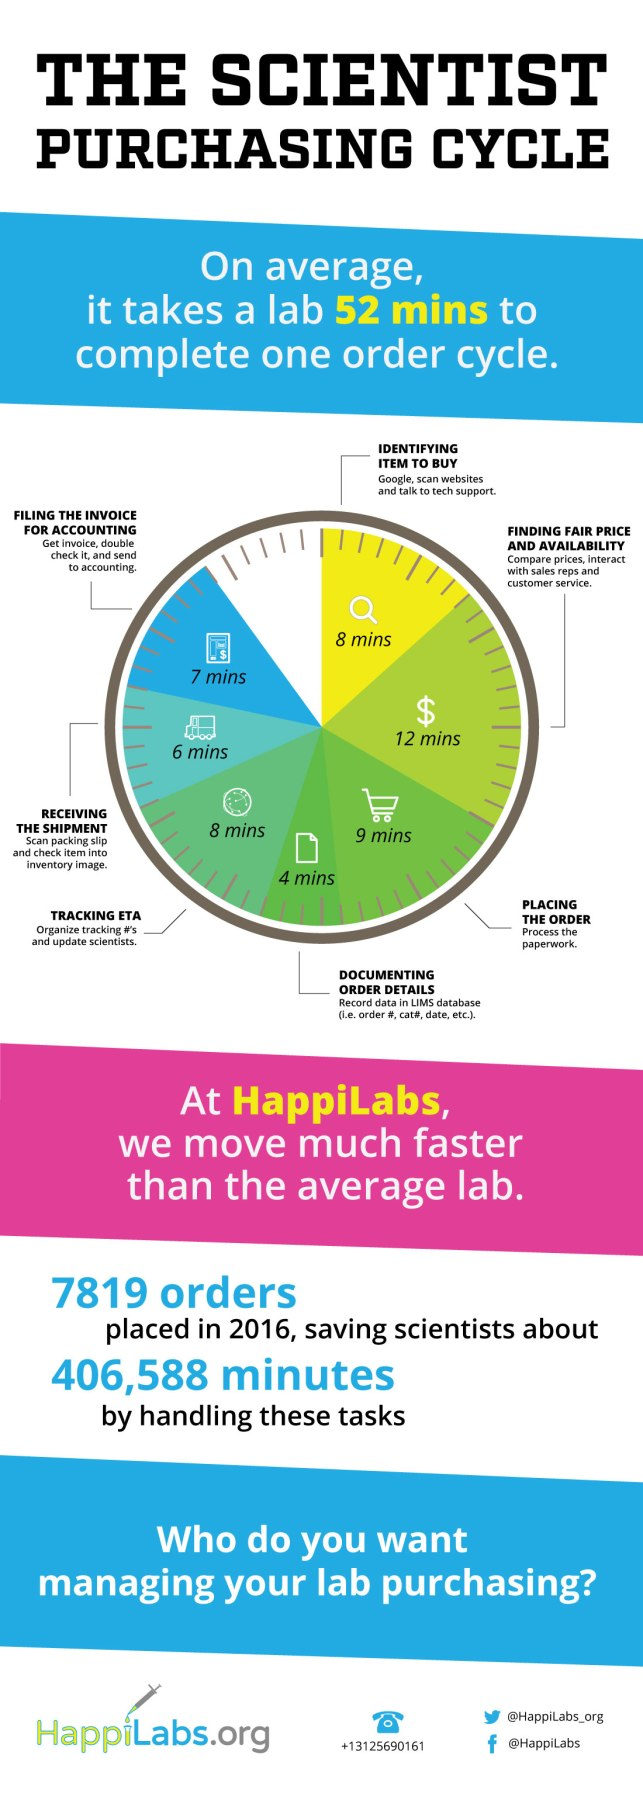 happy scientist at happilabs virtual lab manager purchasing